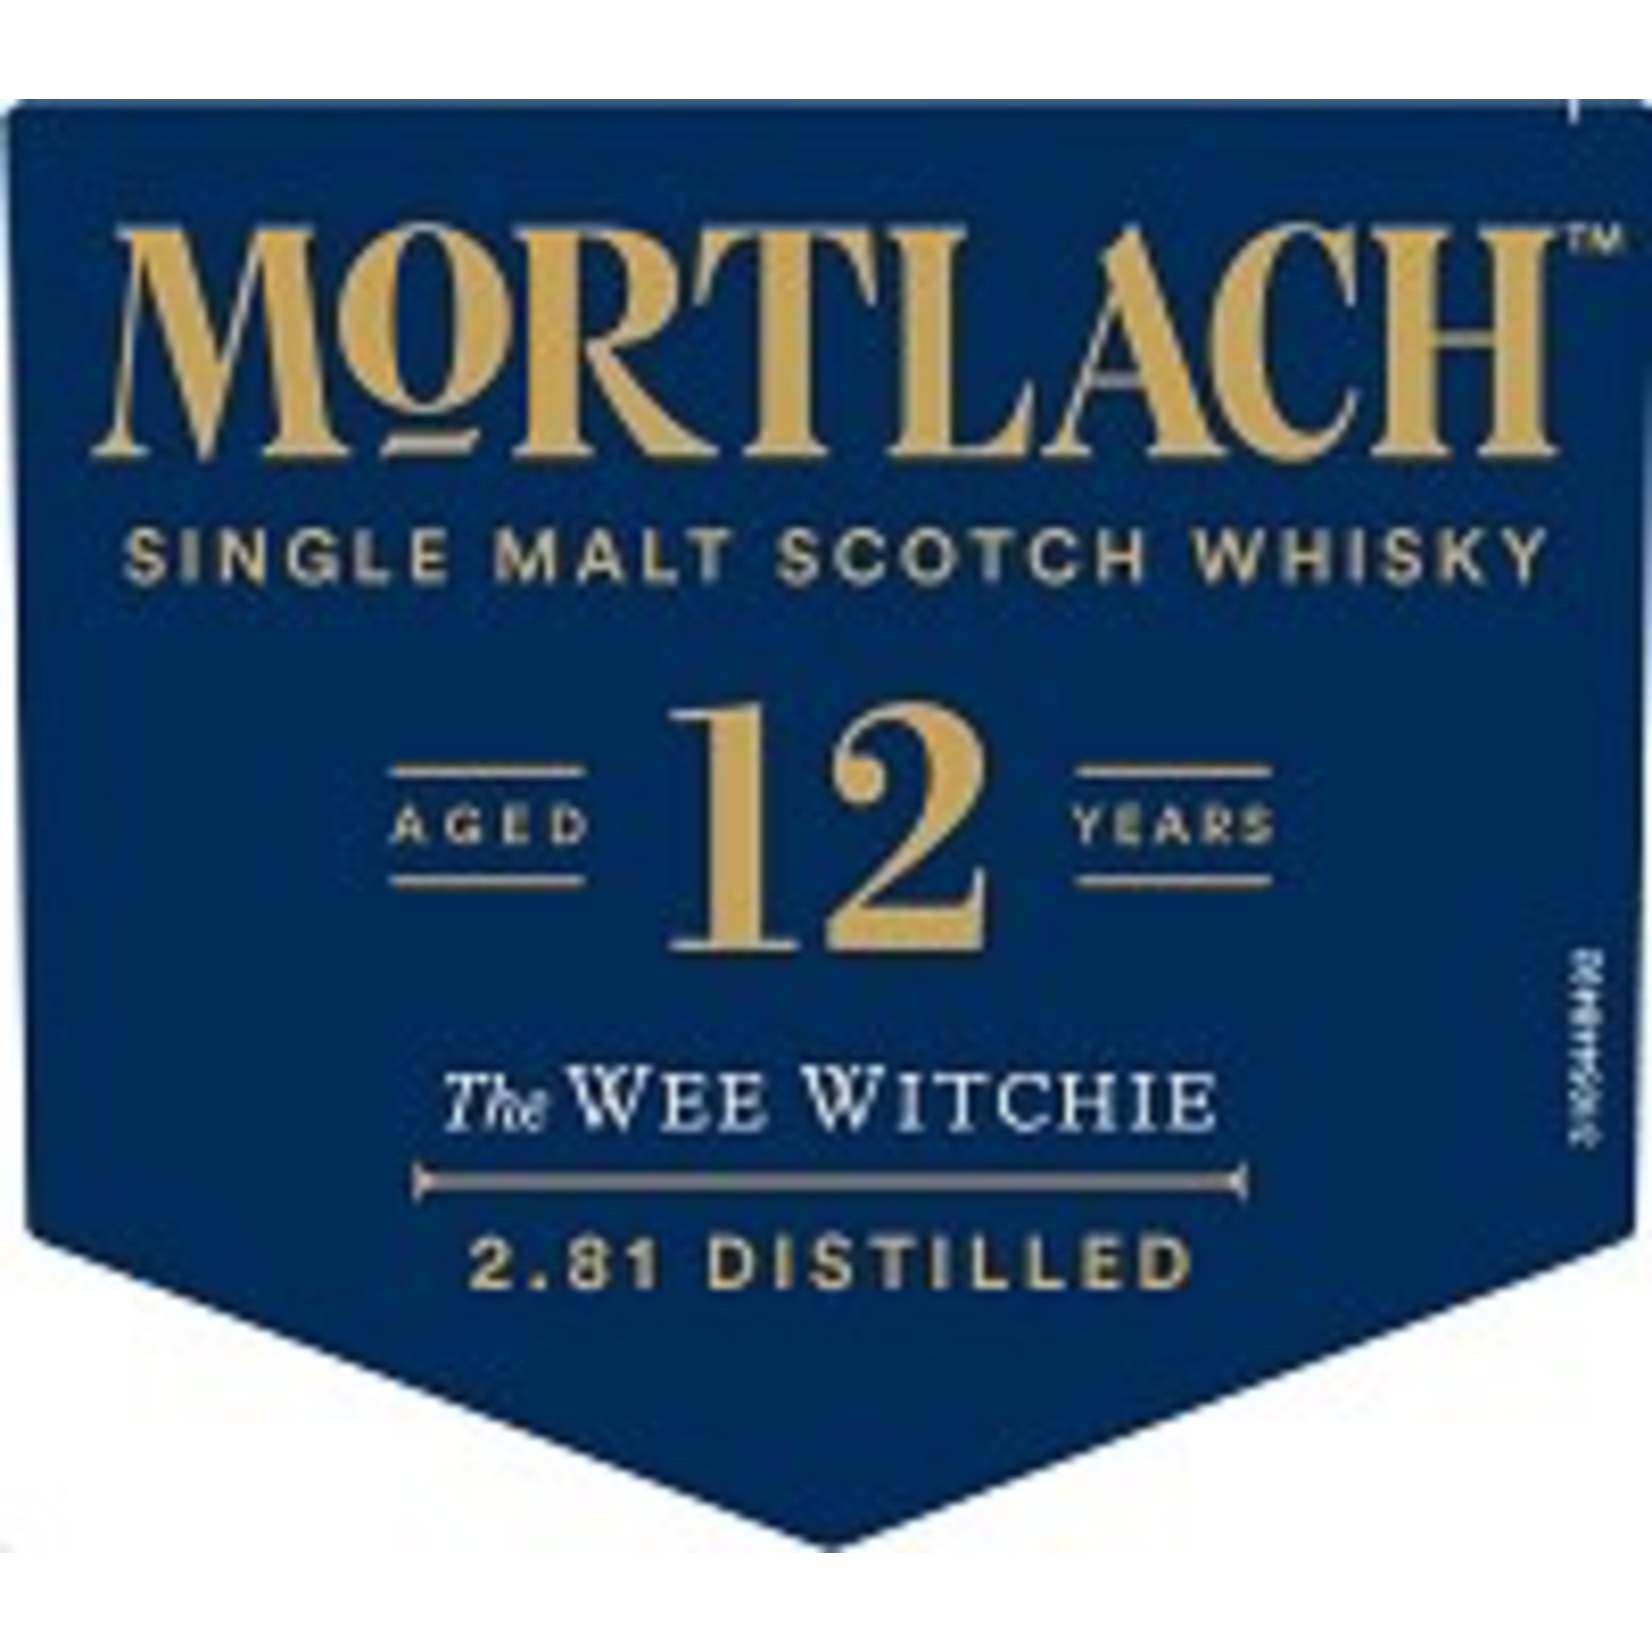 Spirits Mortlach Single Malt Scotch 12 Year The Wee Witchie